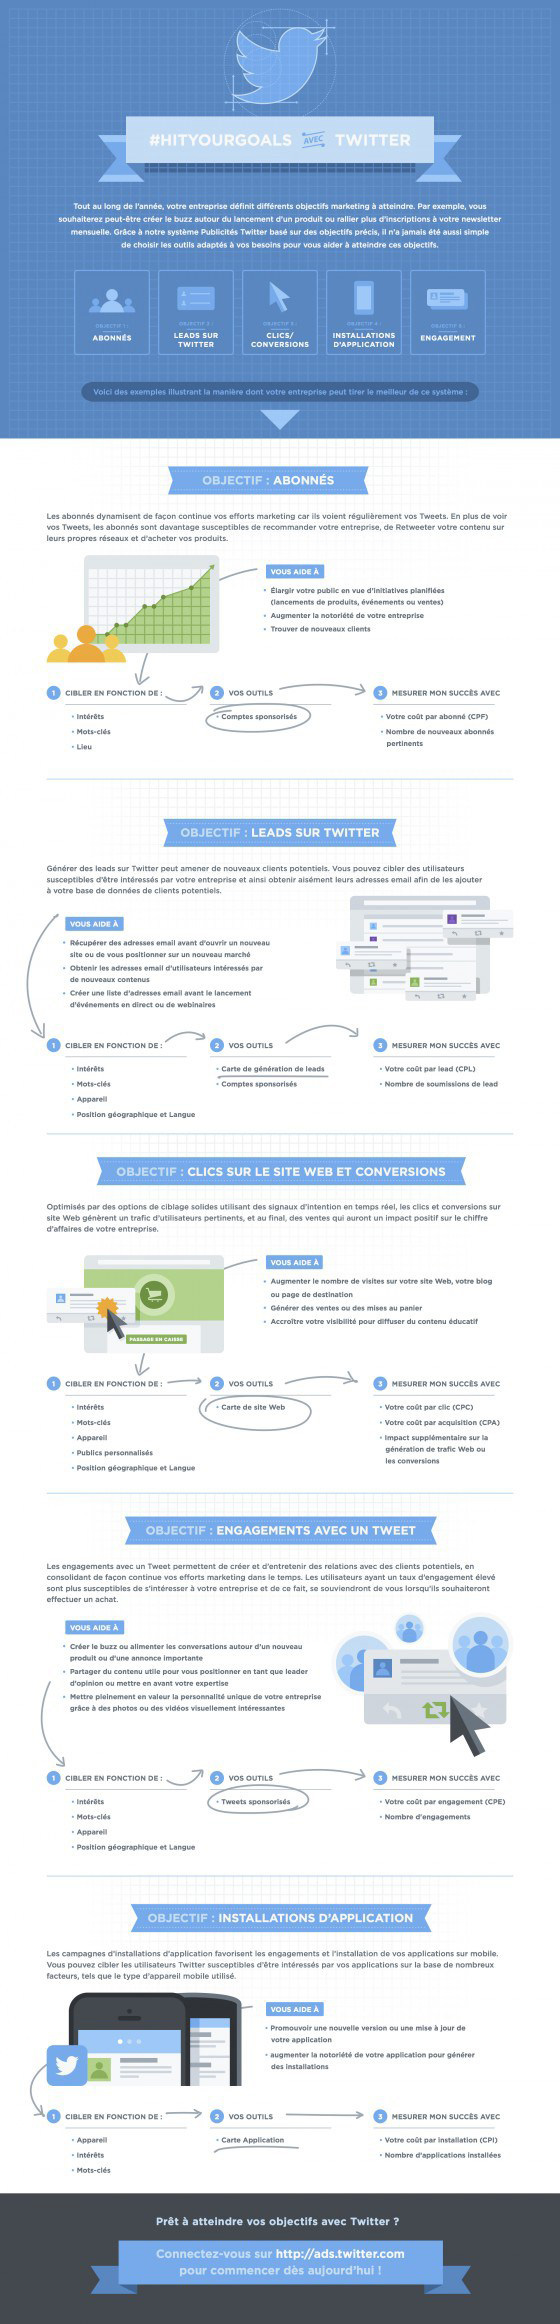 Infographie Guide Twitter Ads